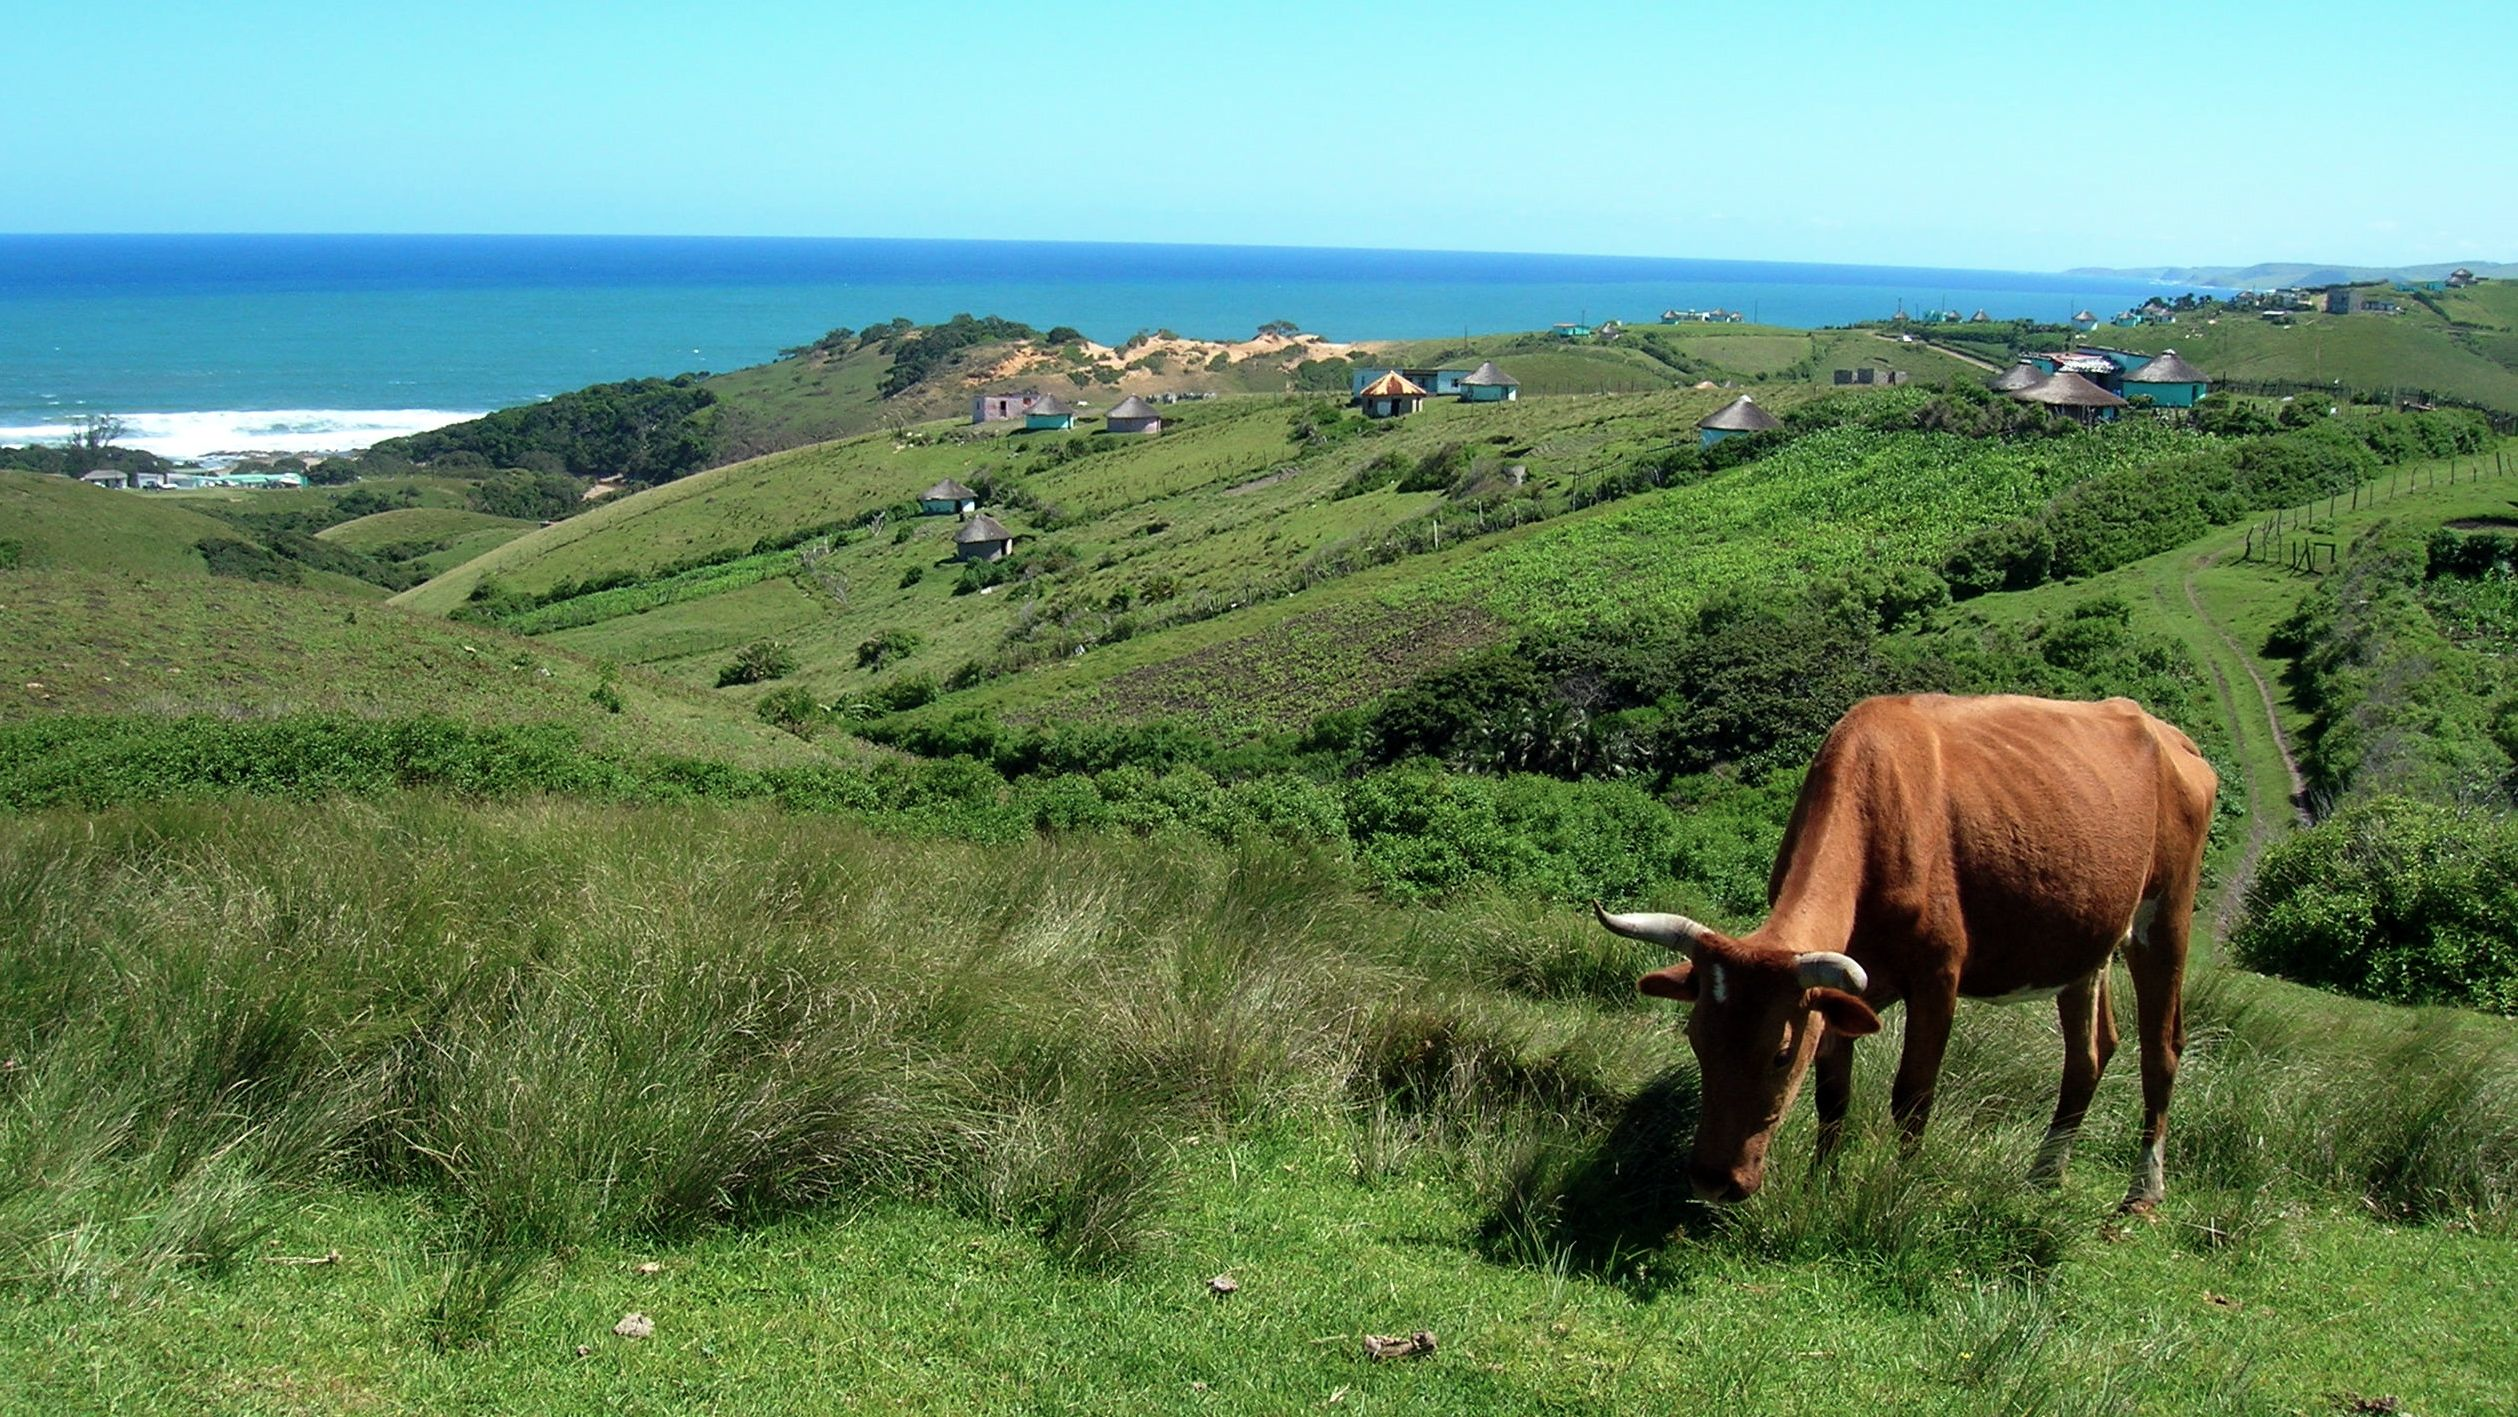 Grazing in the Transkei